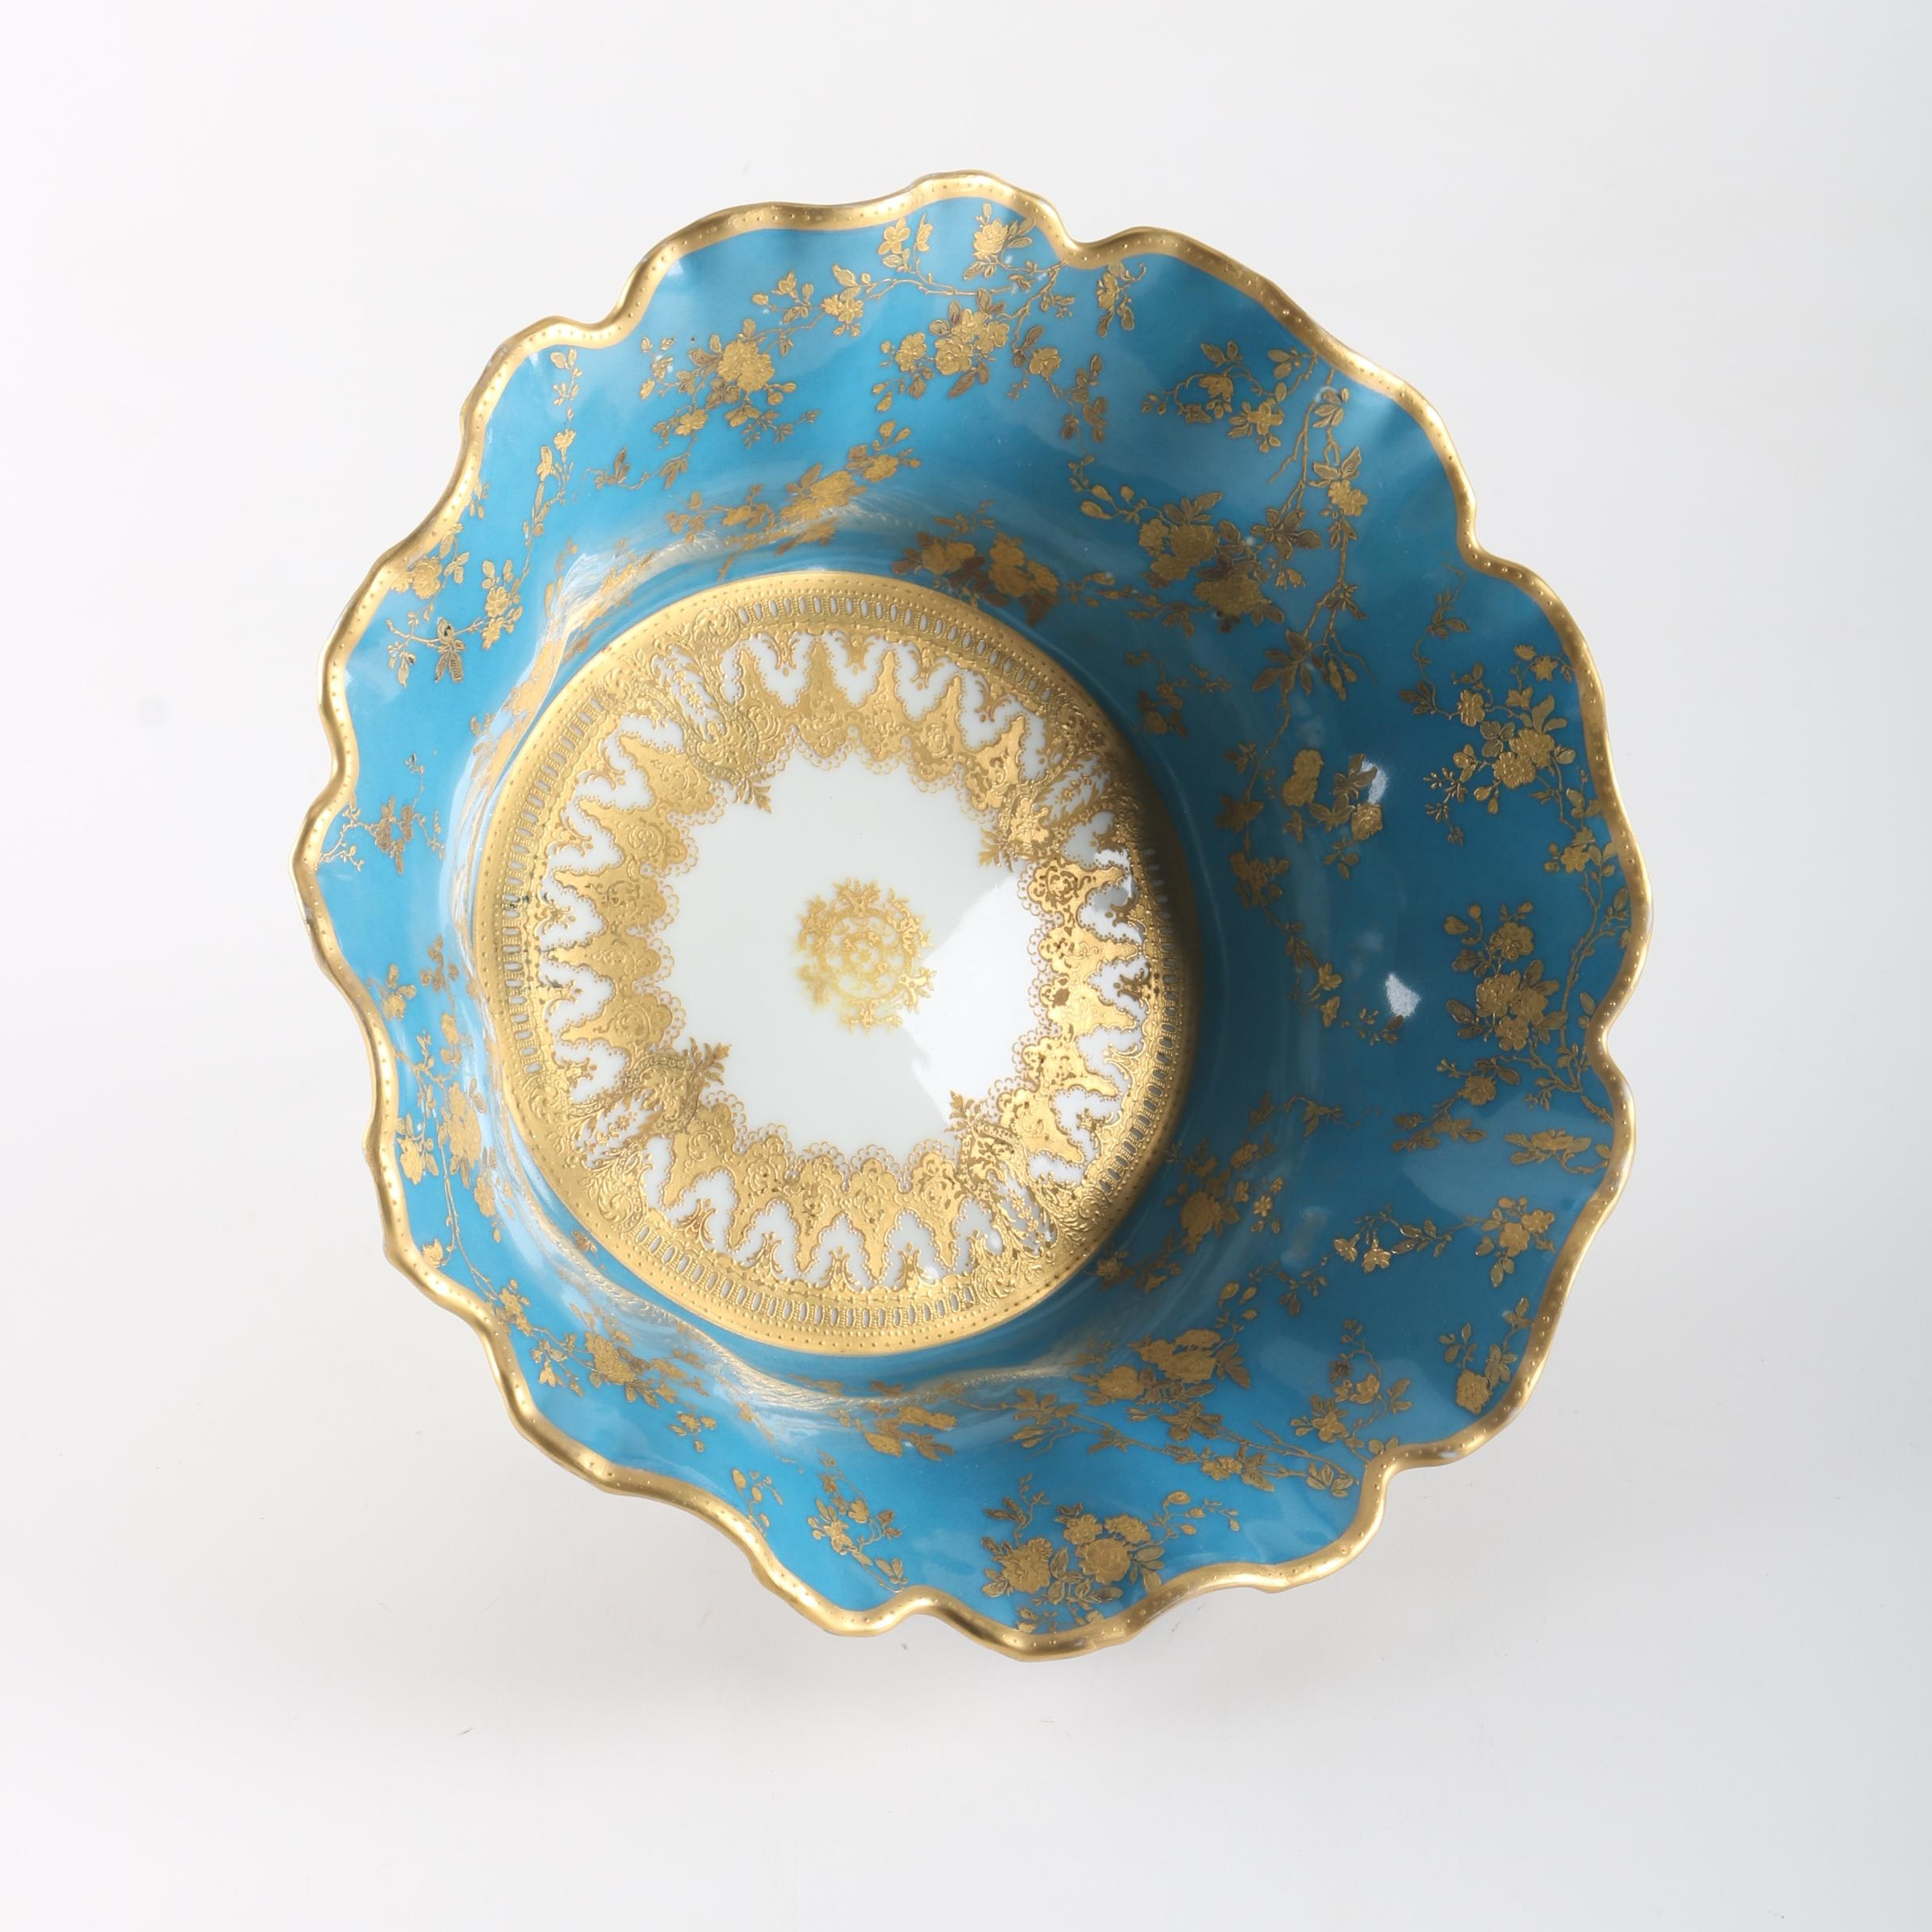 Haviland & Co. Porcelain Bowl With Gilt